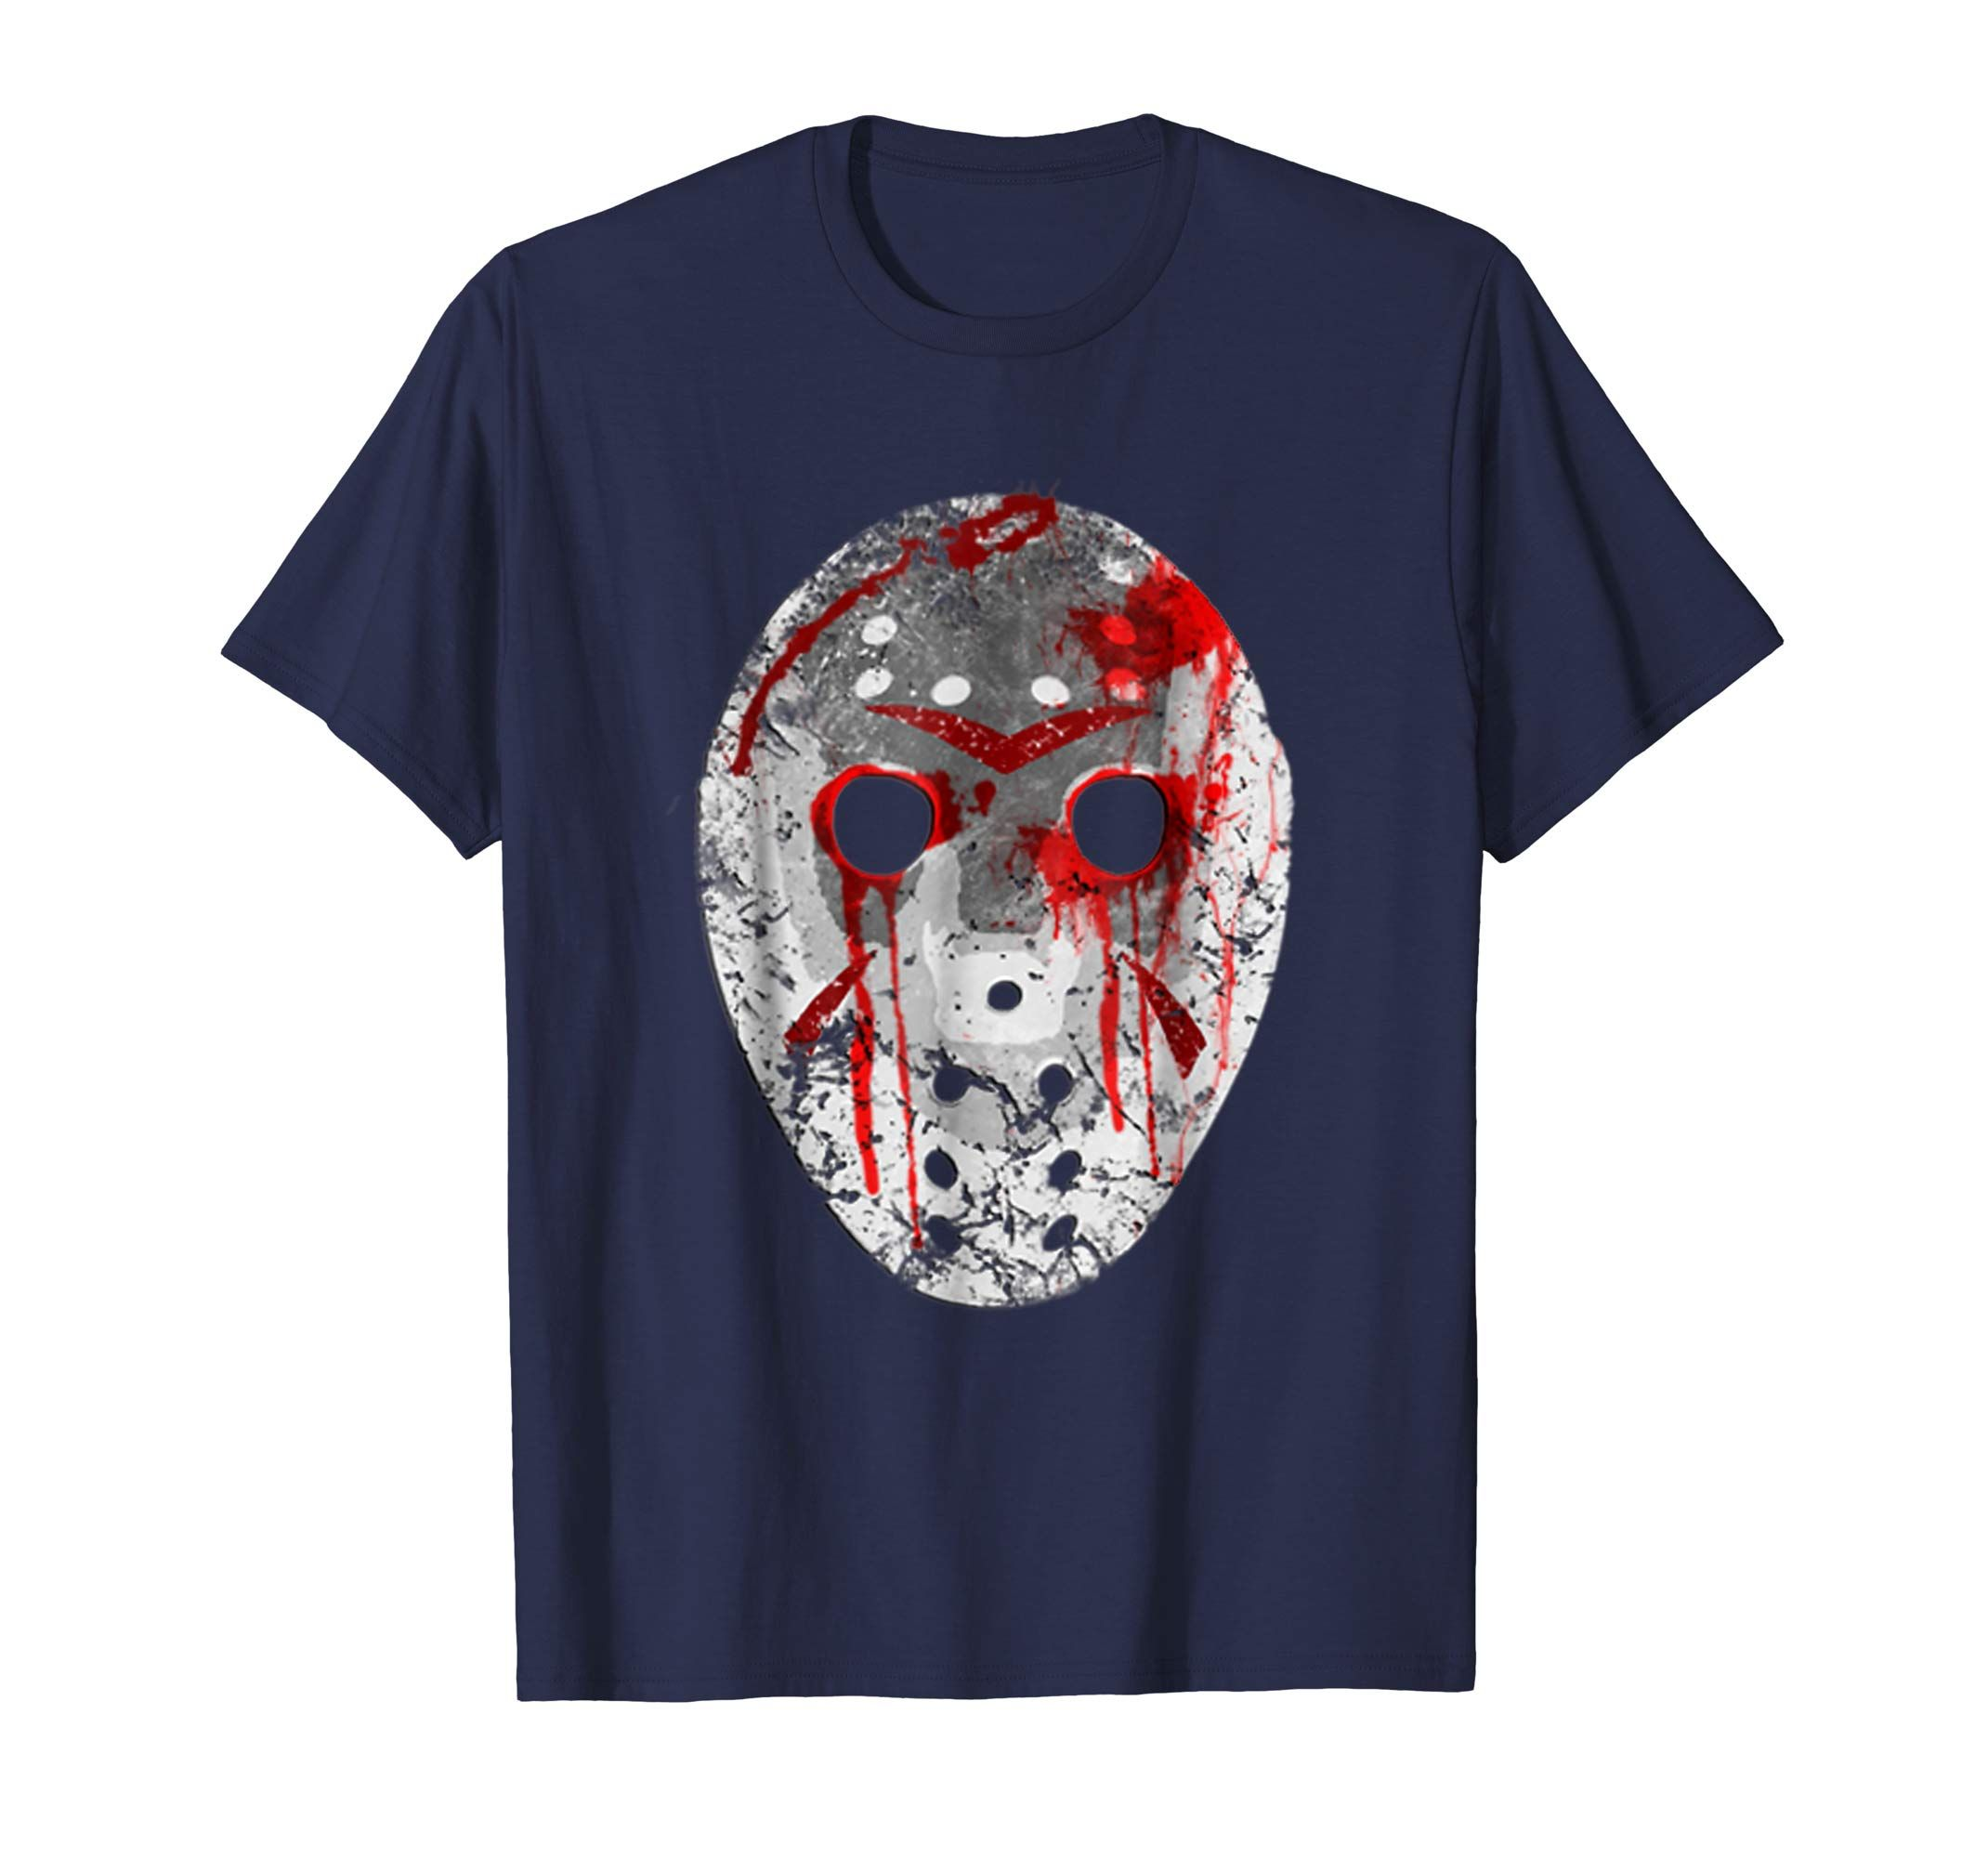 Pin On Amazon T Shirts By Scar Design